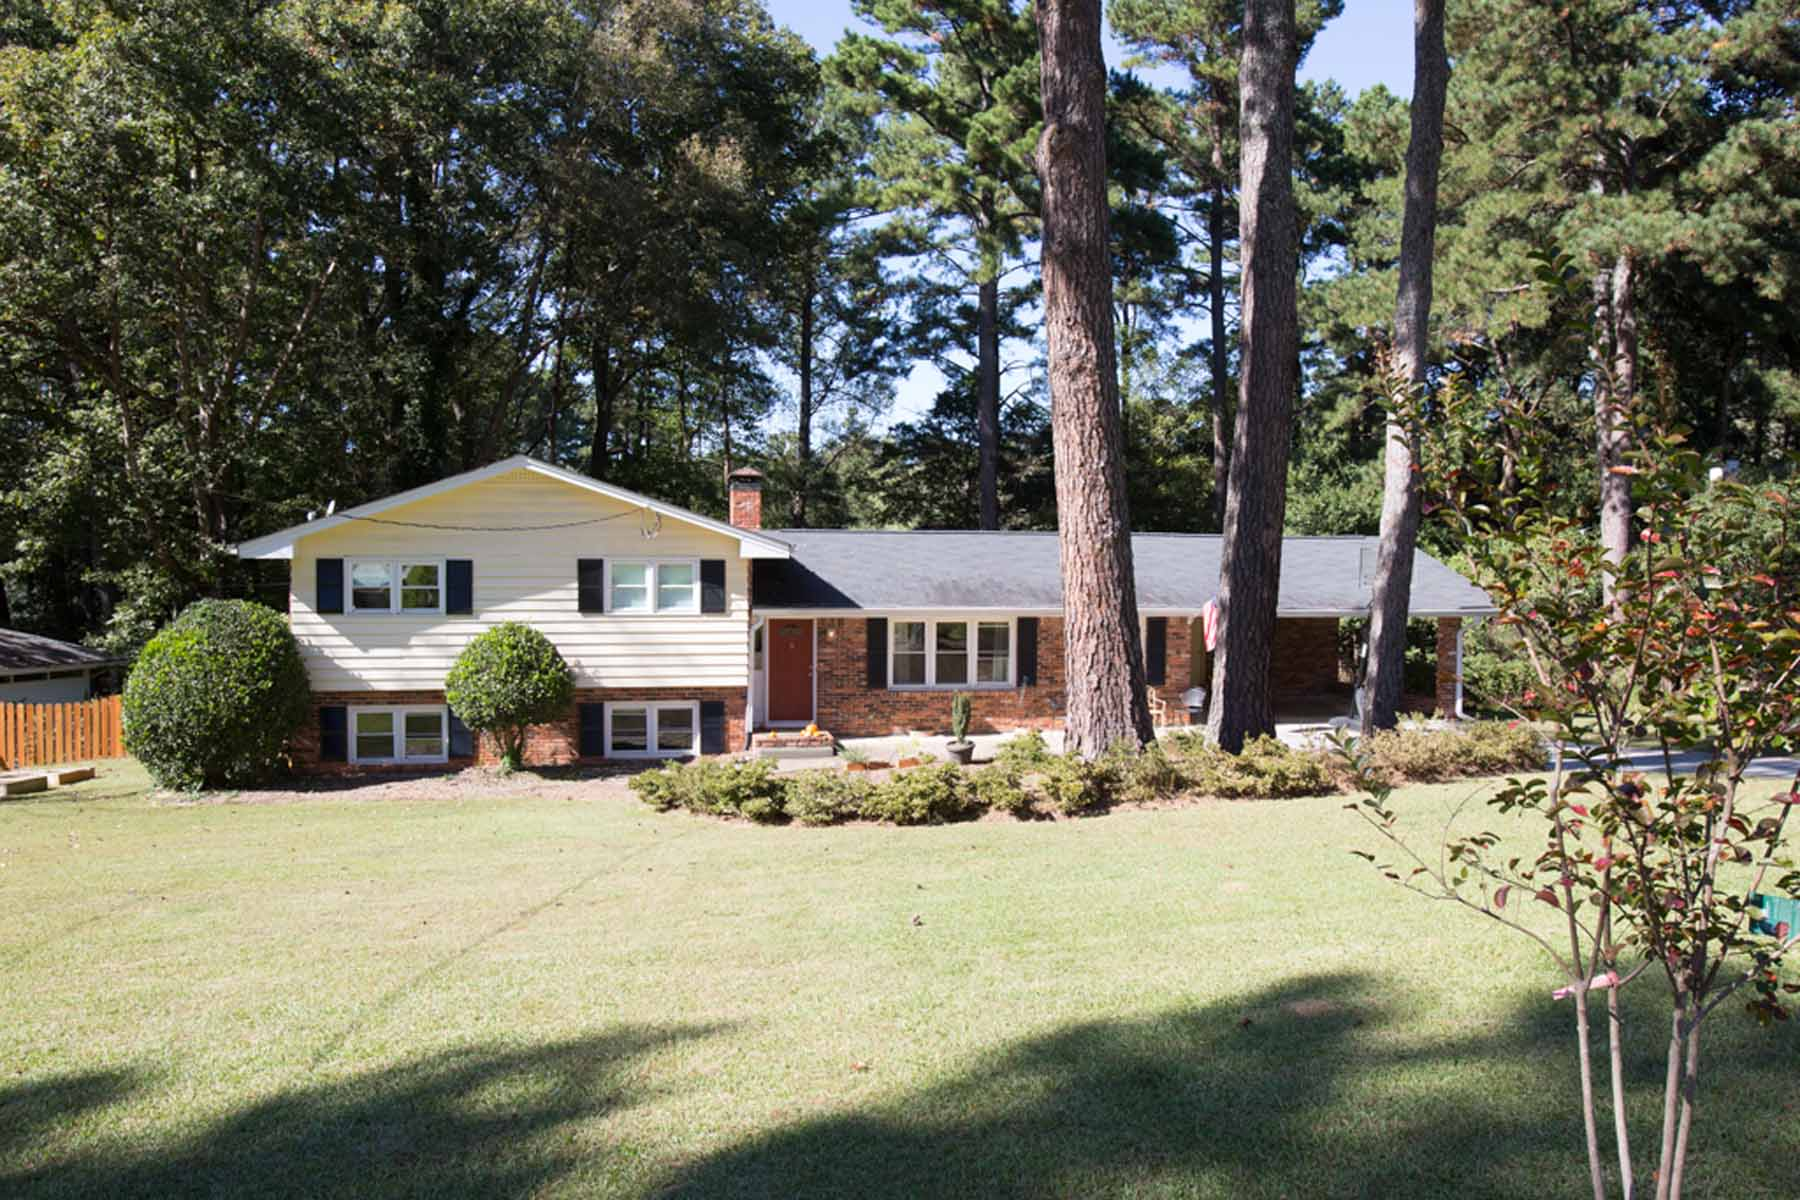 Single Family Home for Sale at Spacious Home On Nice Lot 3484 Embry Circle Atlanta, Georgia 30341 United States